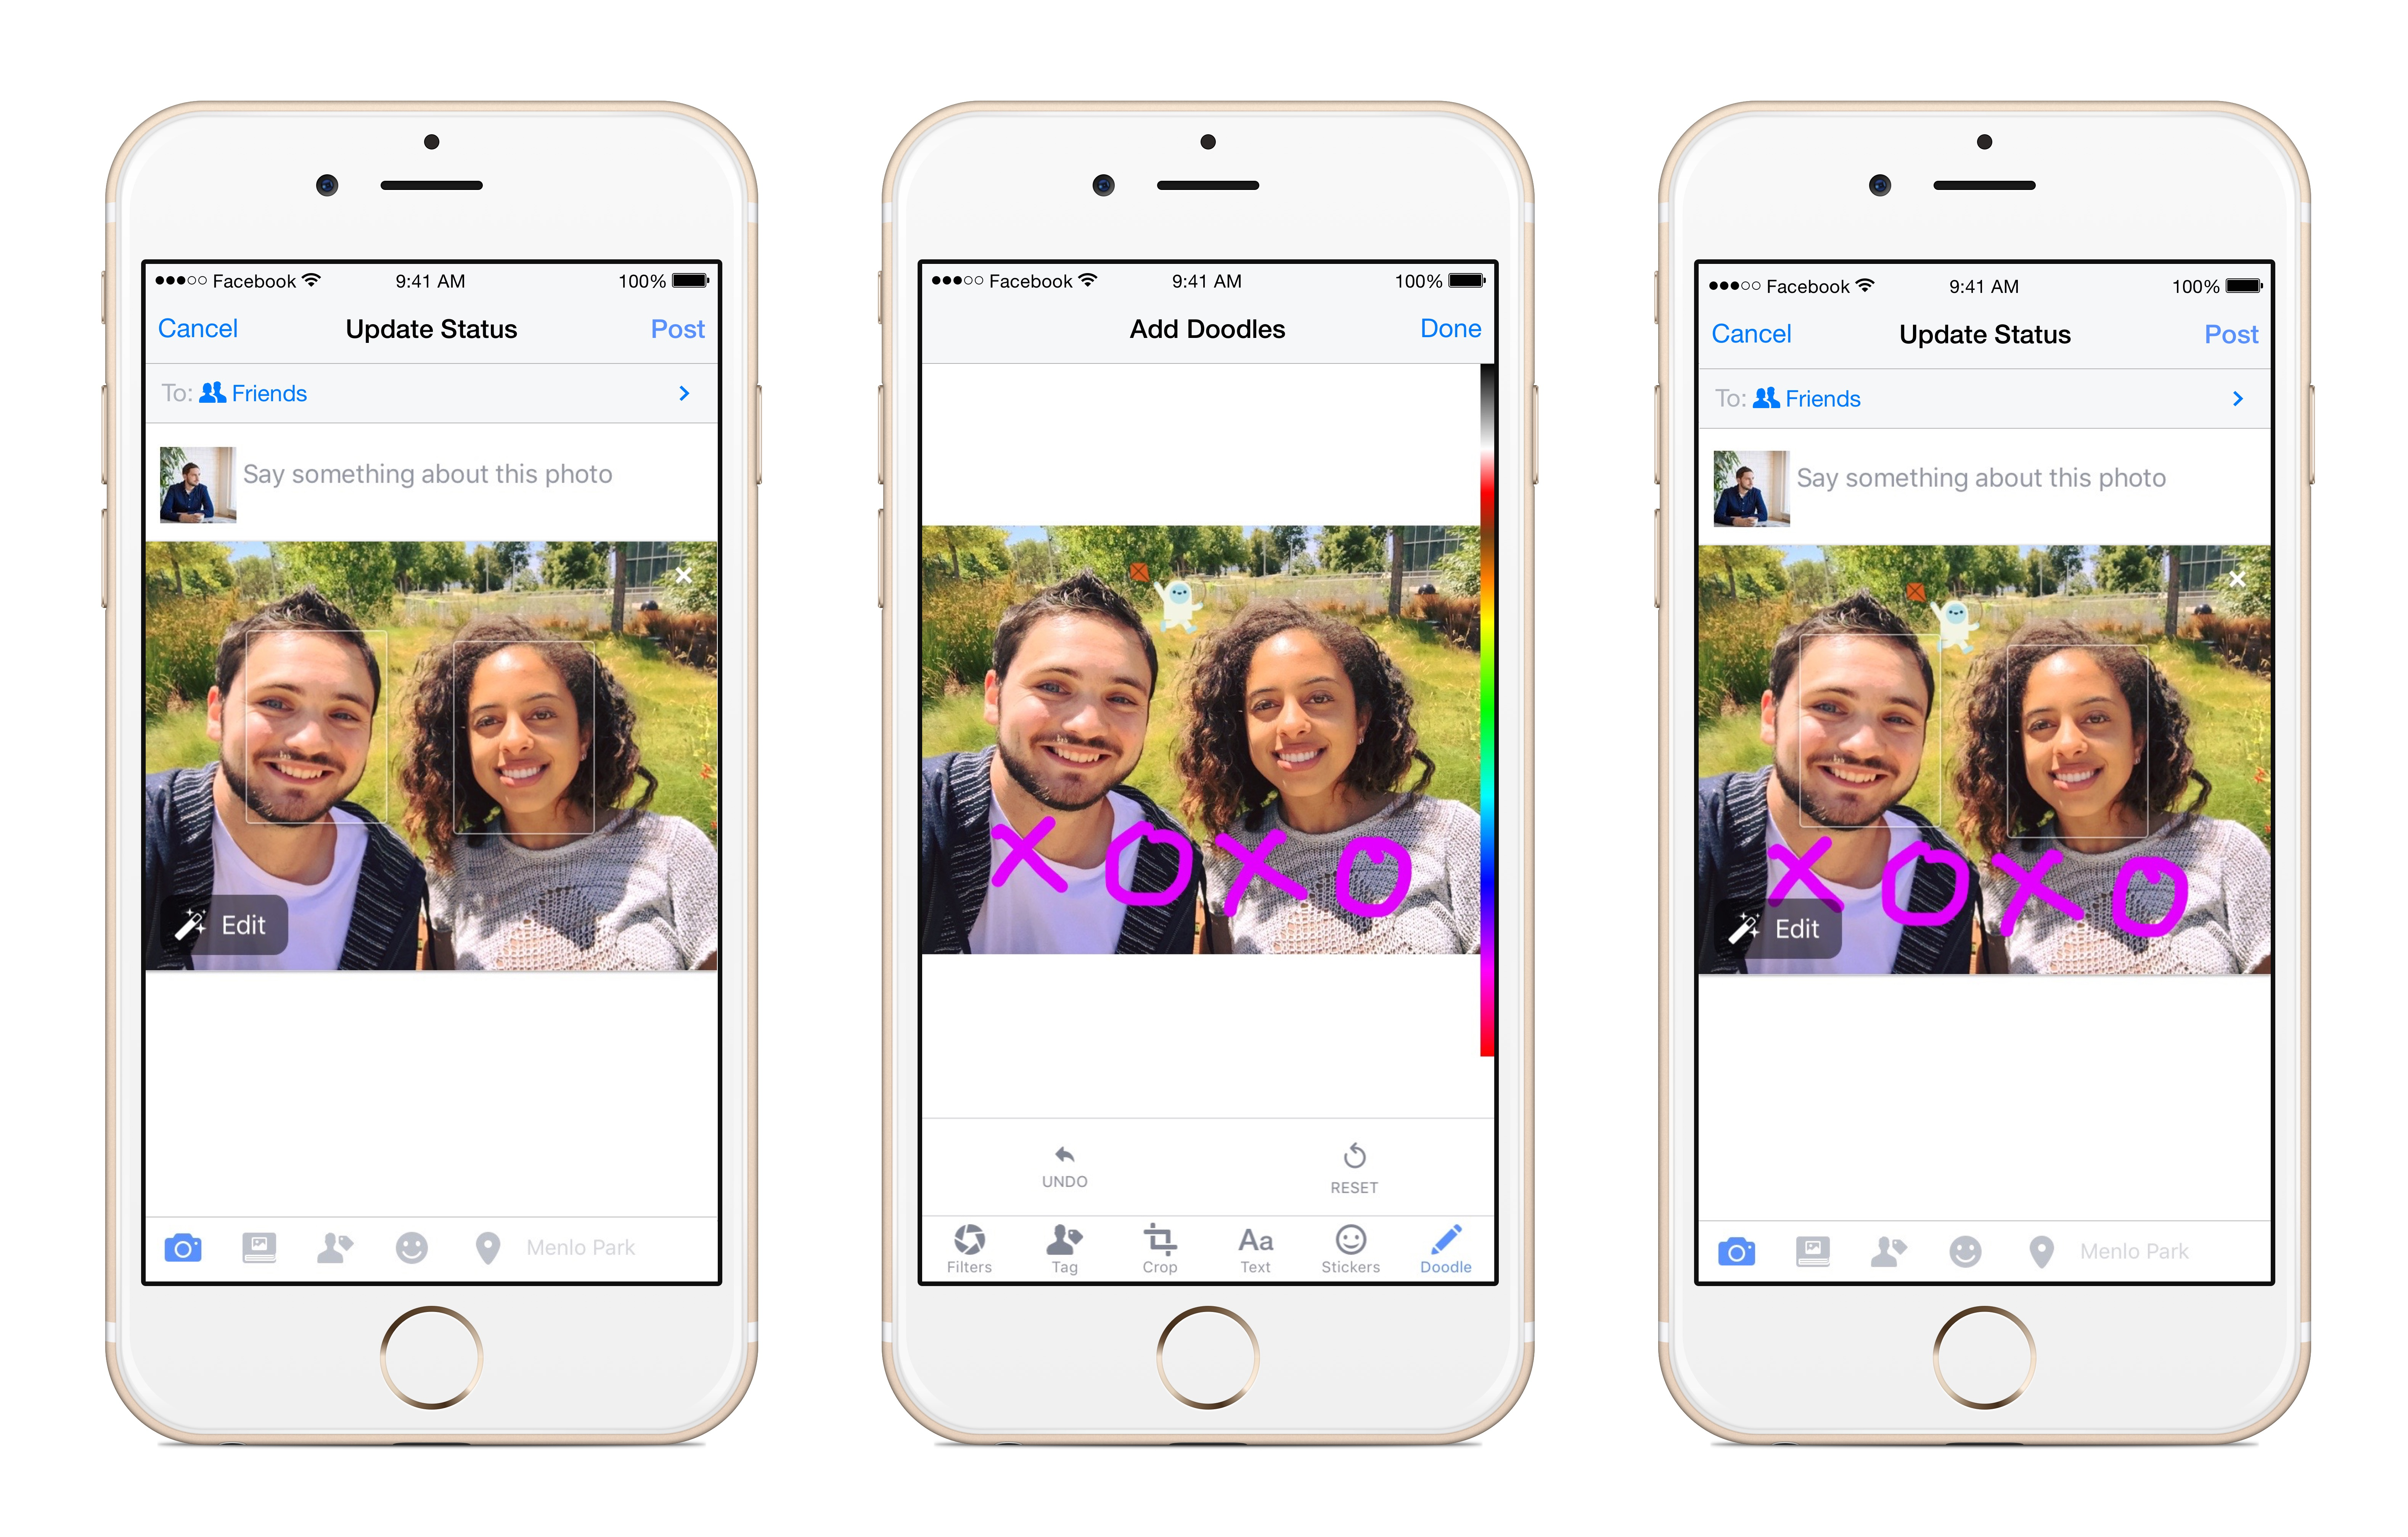 You can share your iPhone 6s Live Photos on Facebook Facebook 101: Turn Your Live Photo into How to Post, live, photos to Facebook from iPhone Running iOS